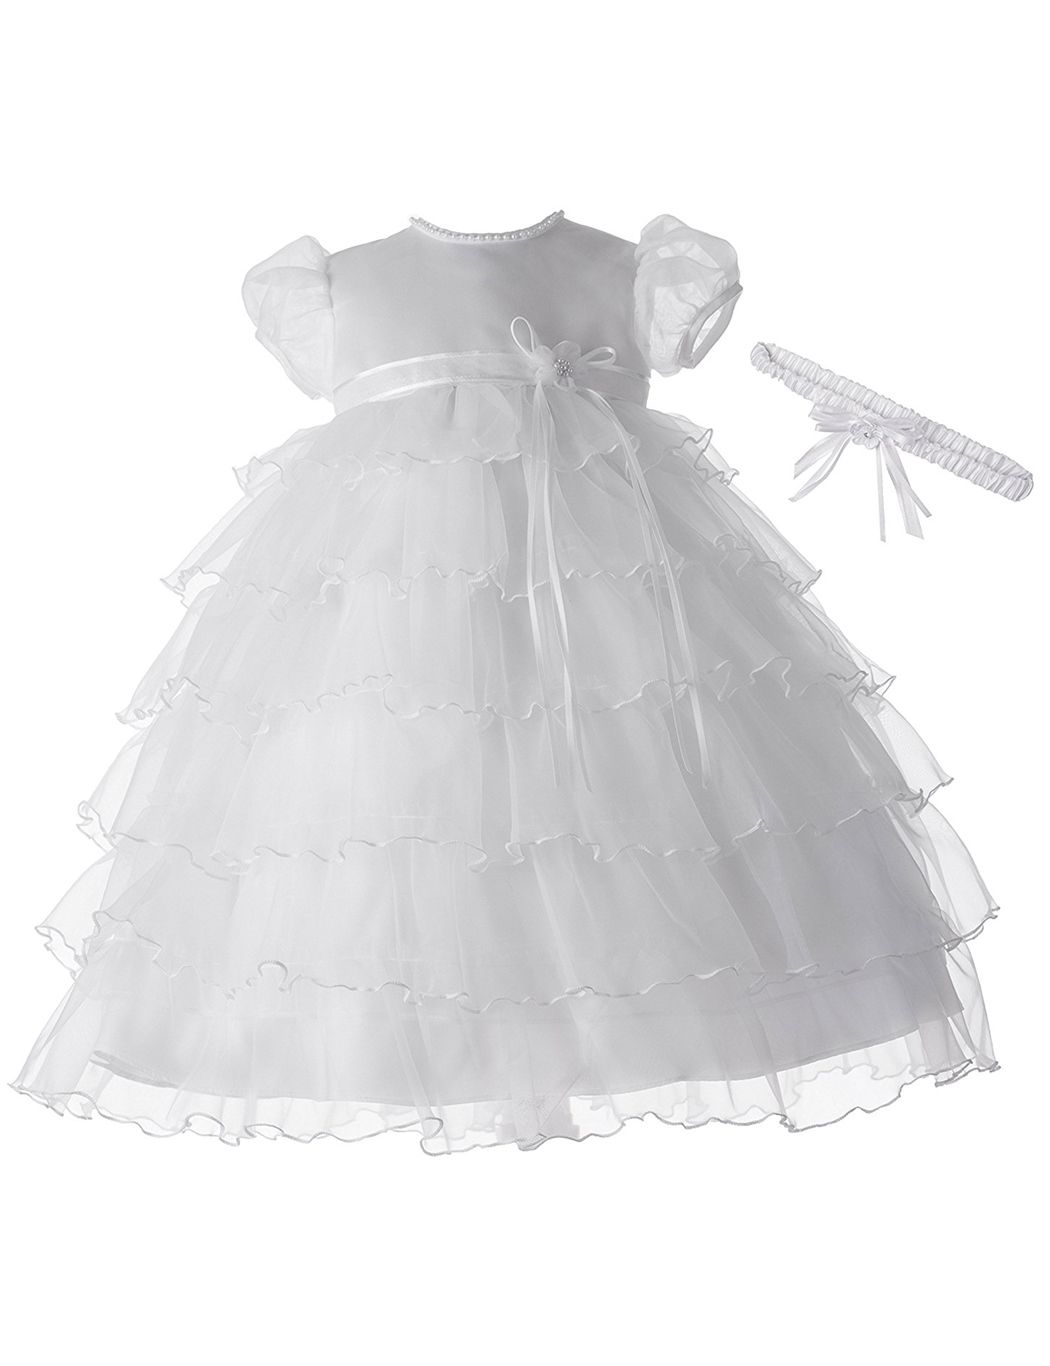 Handmade Beautiful 3d baby dressed in a layered christening gown Christneing day card CHRISTENING